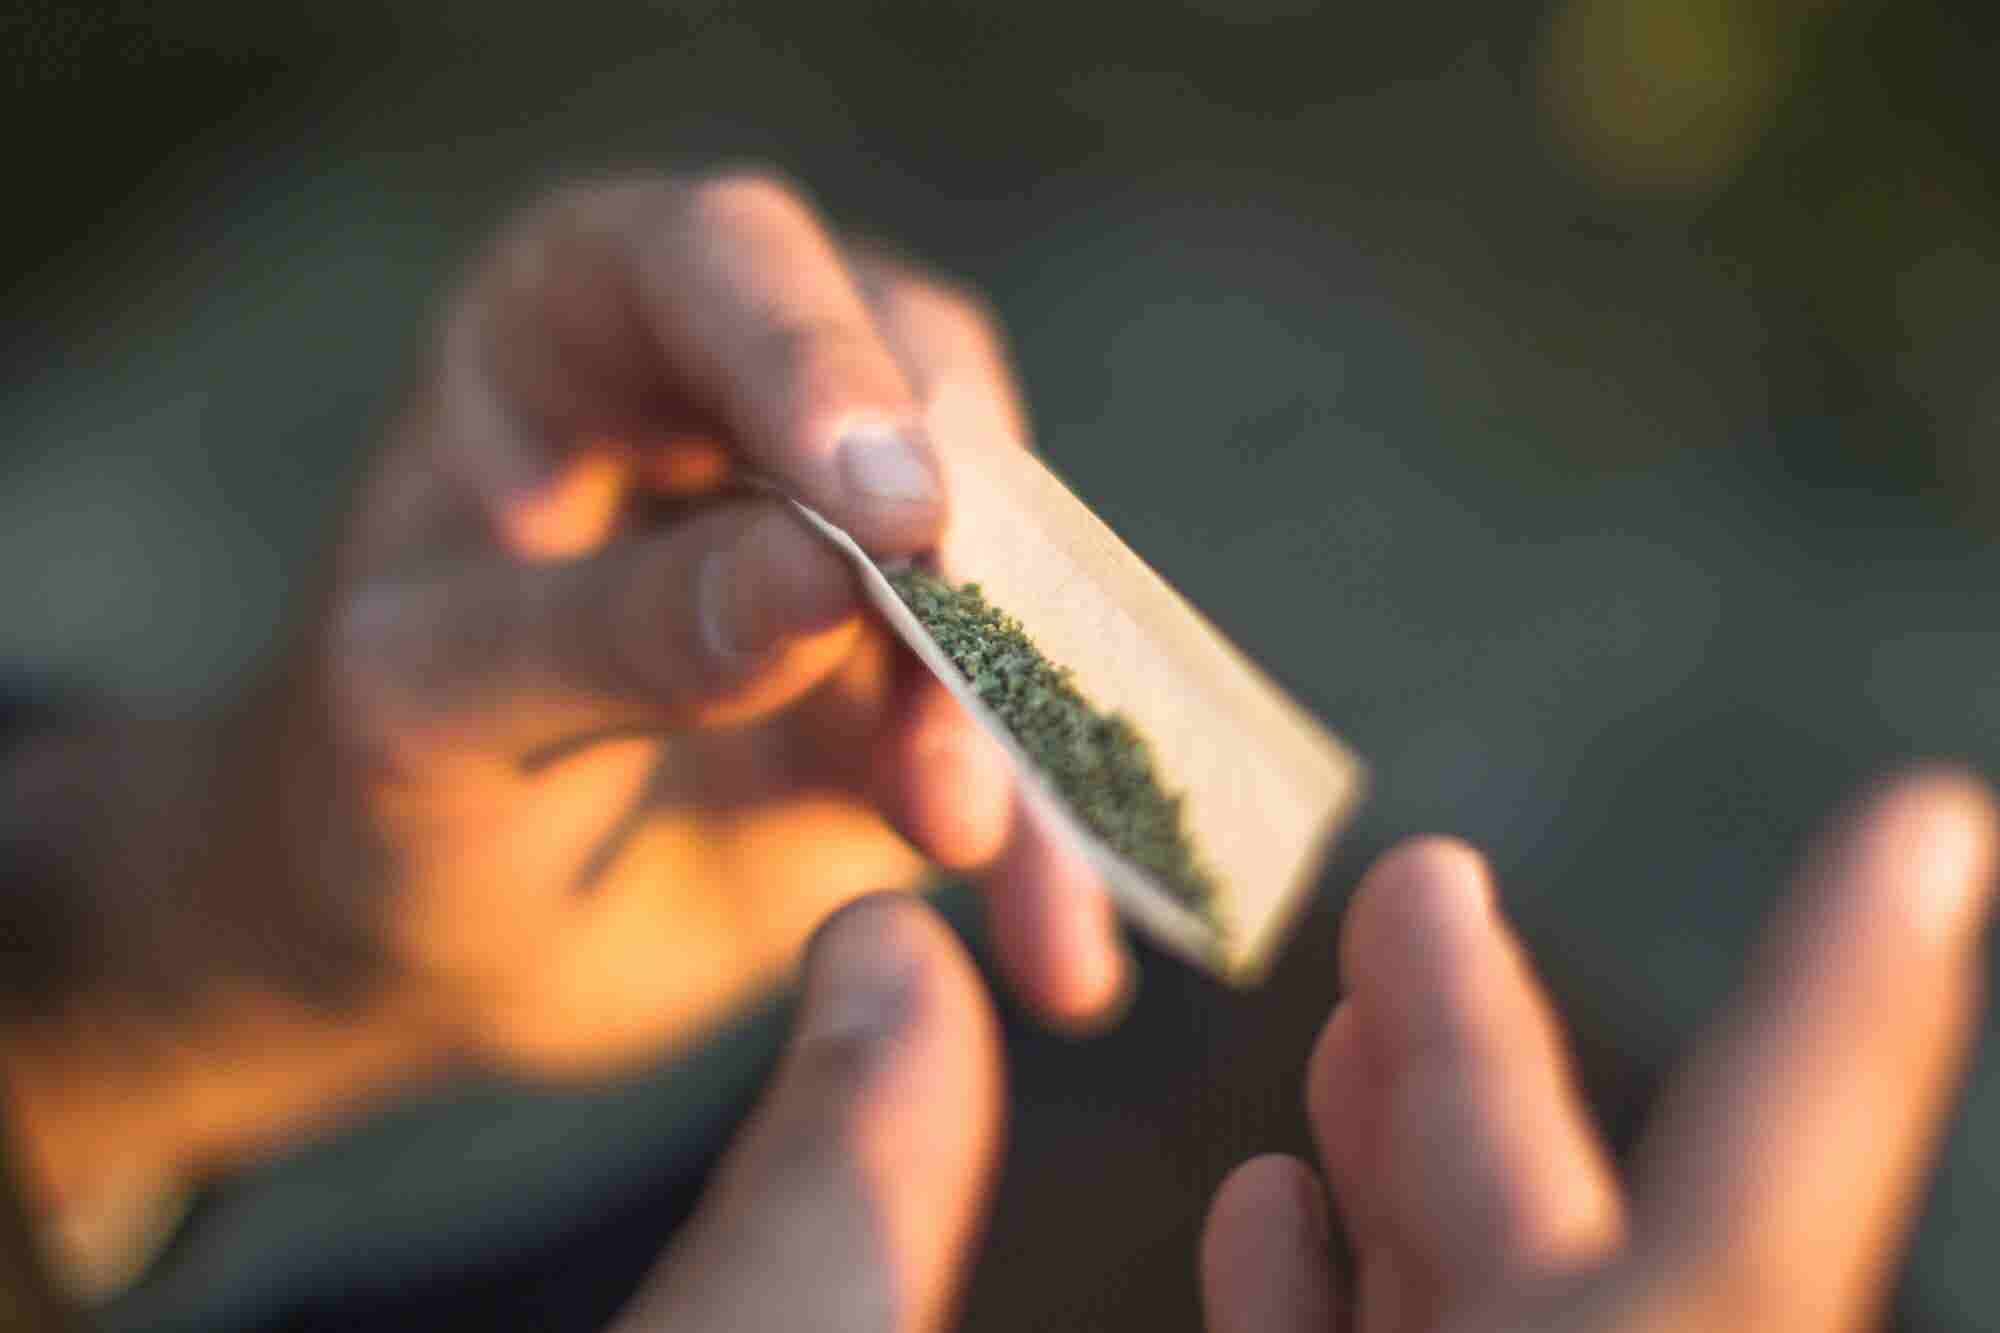 Adult-Use Marijuana Is a 'No-Brainer' for Two Florida Lawmakers but Just a 'No' for Most